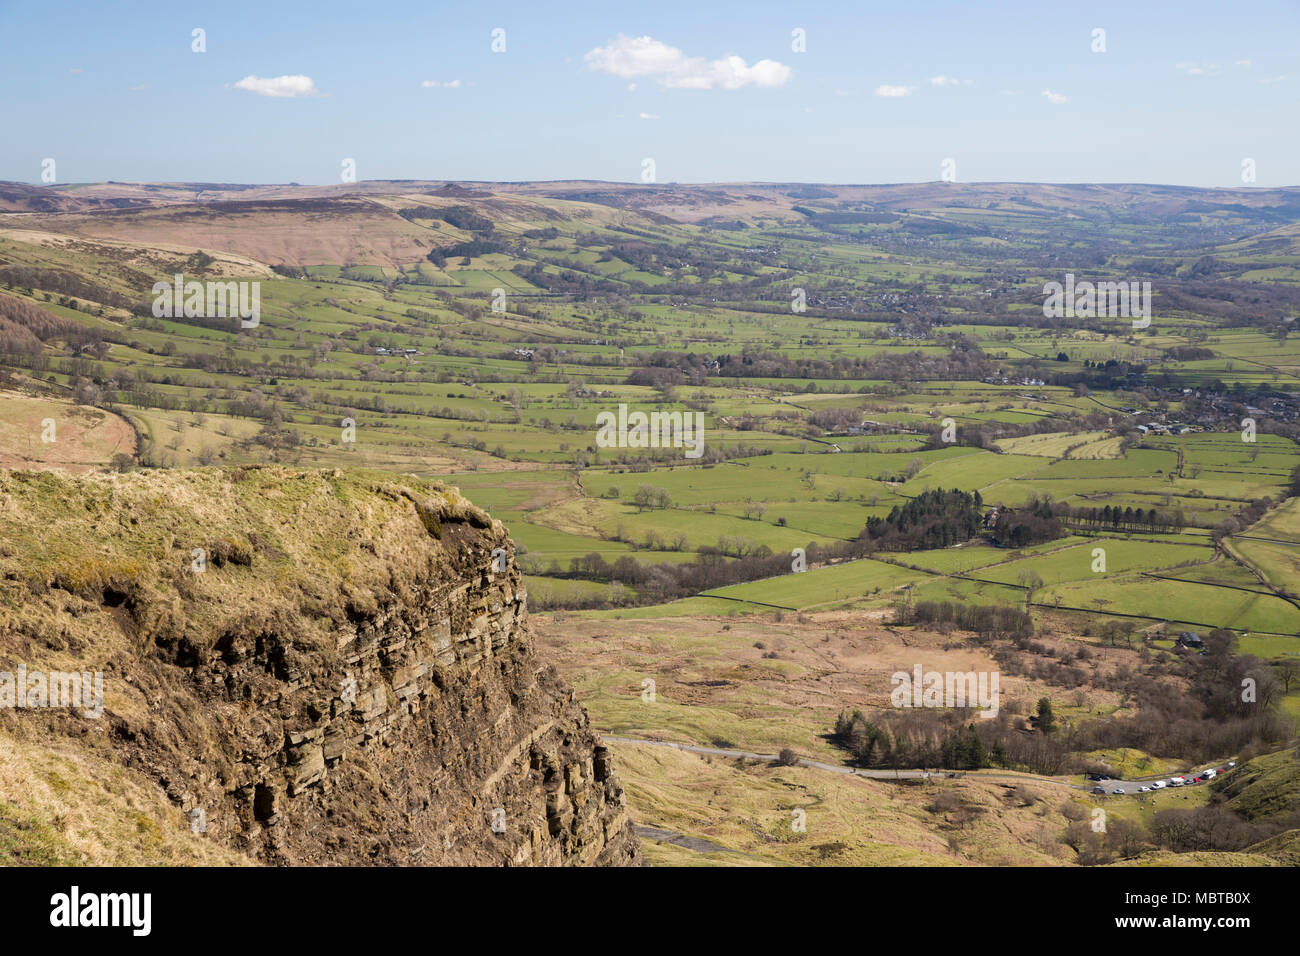 View over the Hope Valley from summit of Mam Tor, Castleton, Peak District National Park, Derbyshire, England, United Kingdom, Europe - Stock Image